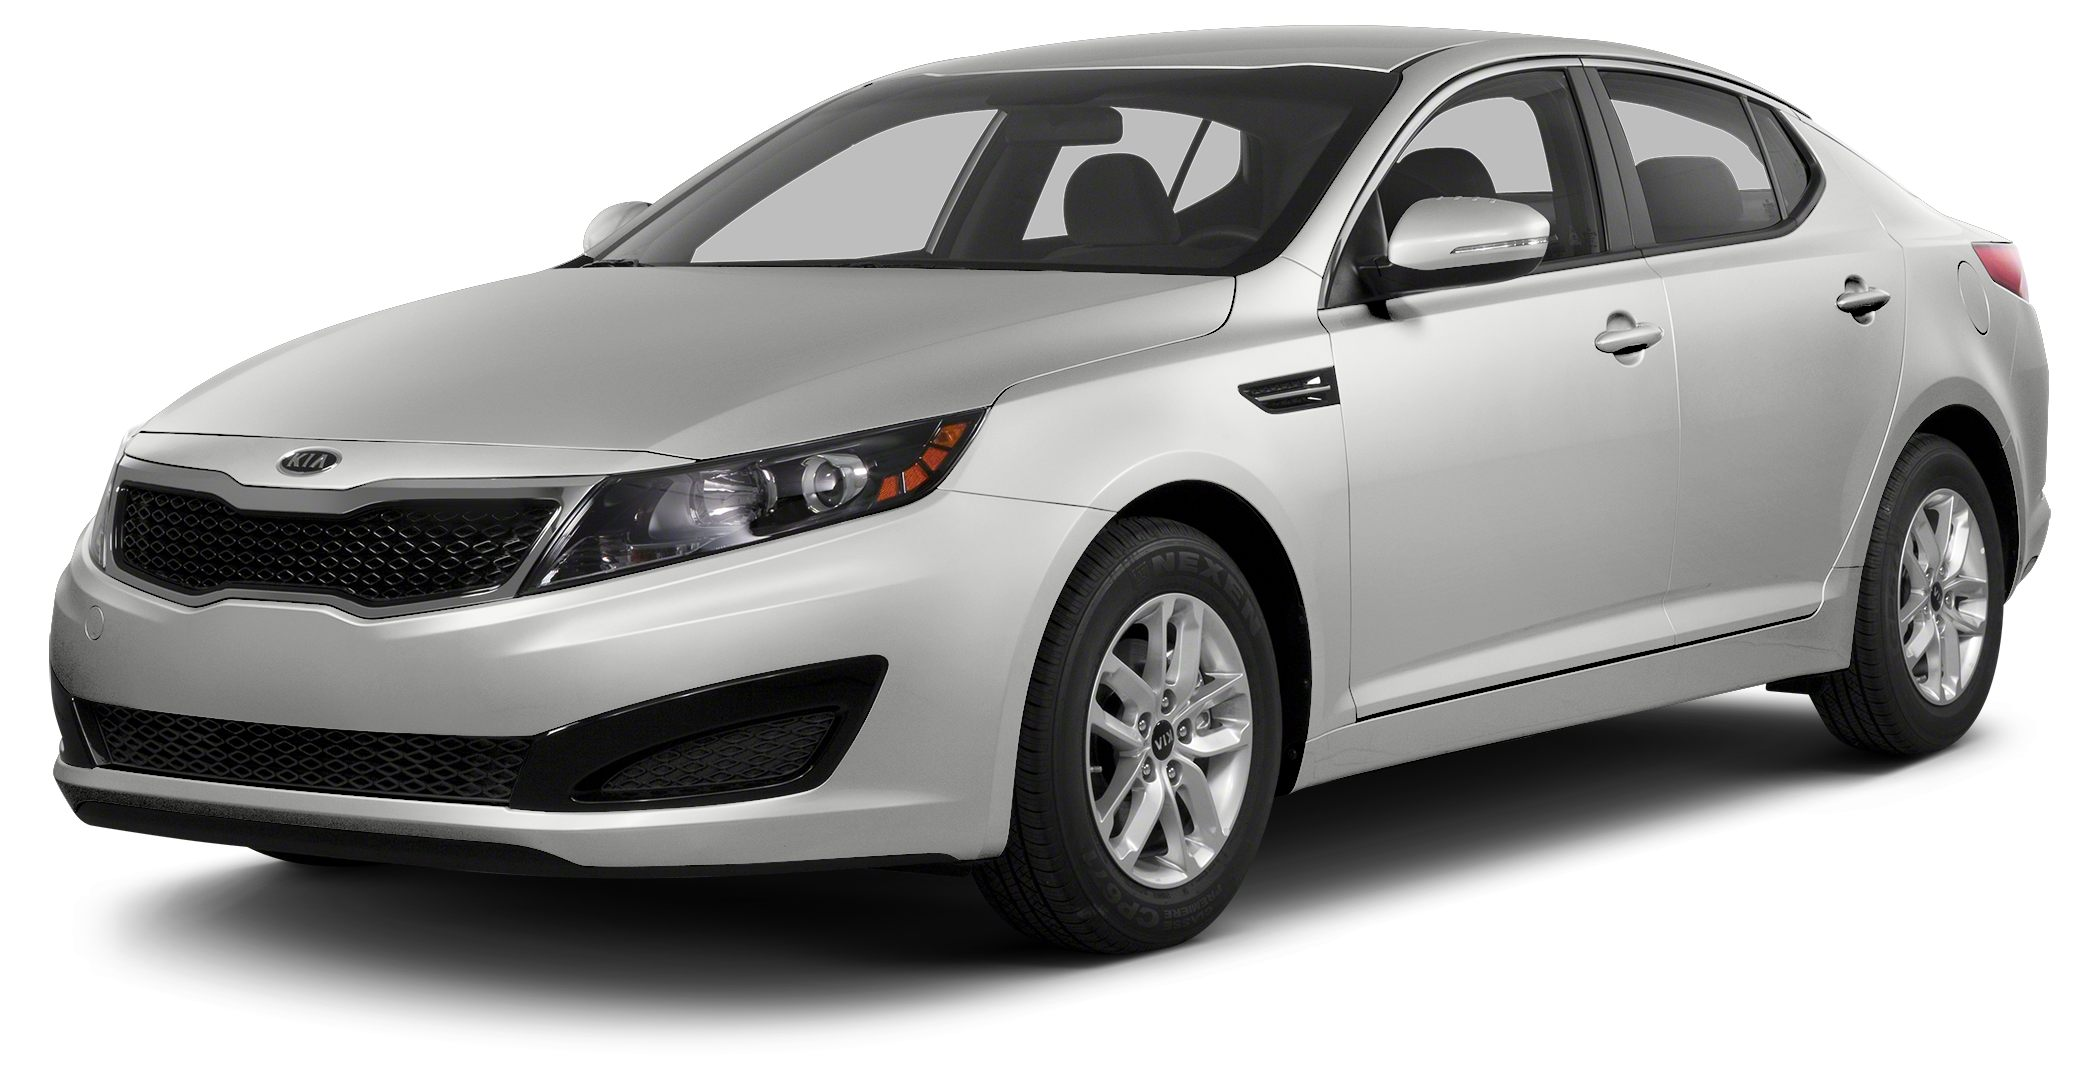 2013 Kia Optima LX Haggle Free Price Low miles well kept Kia Optima Spotless exterior scratch